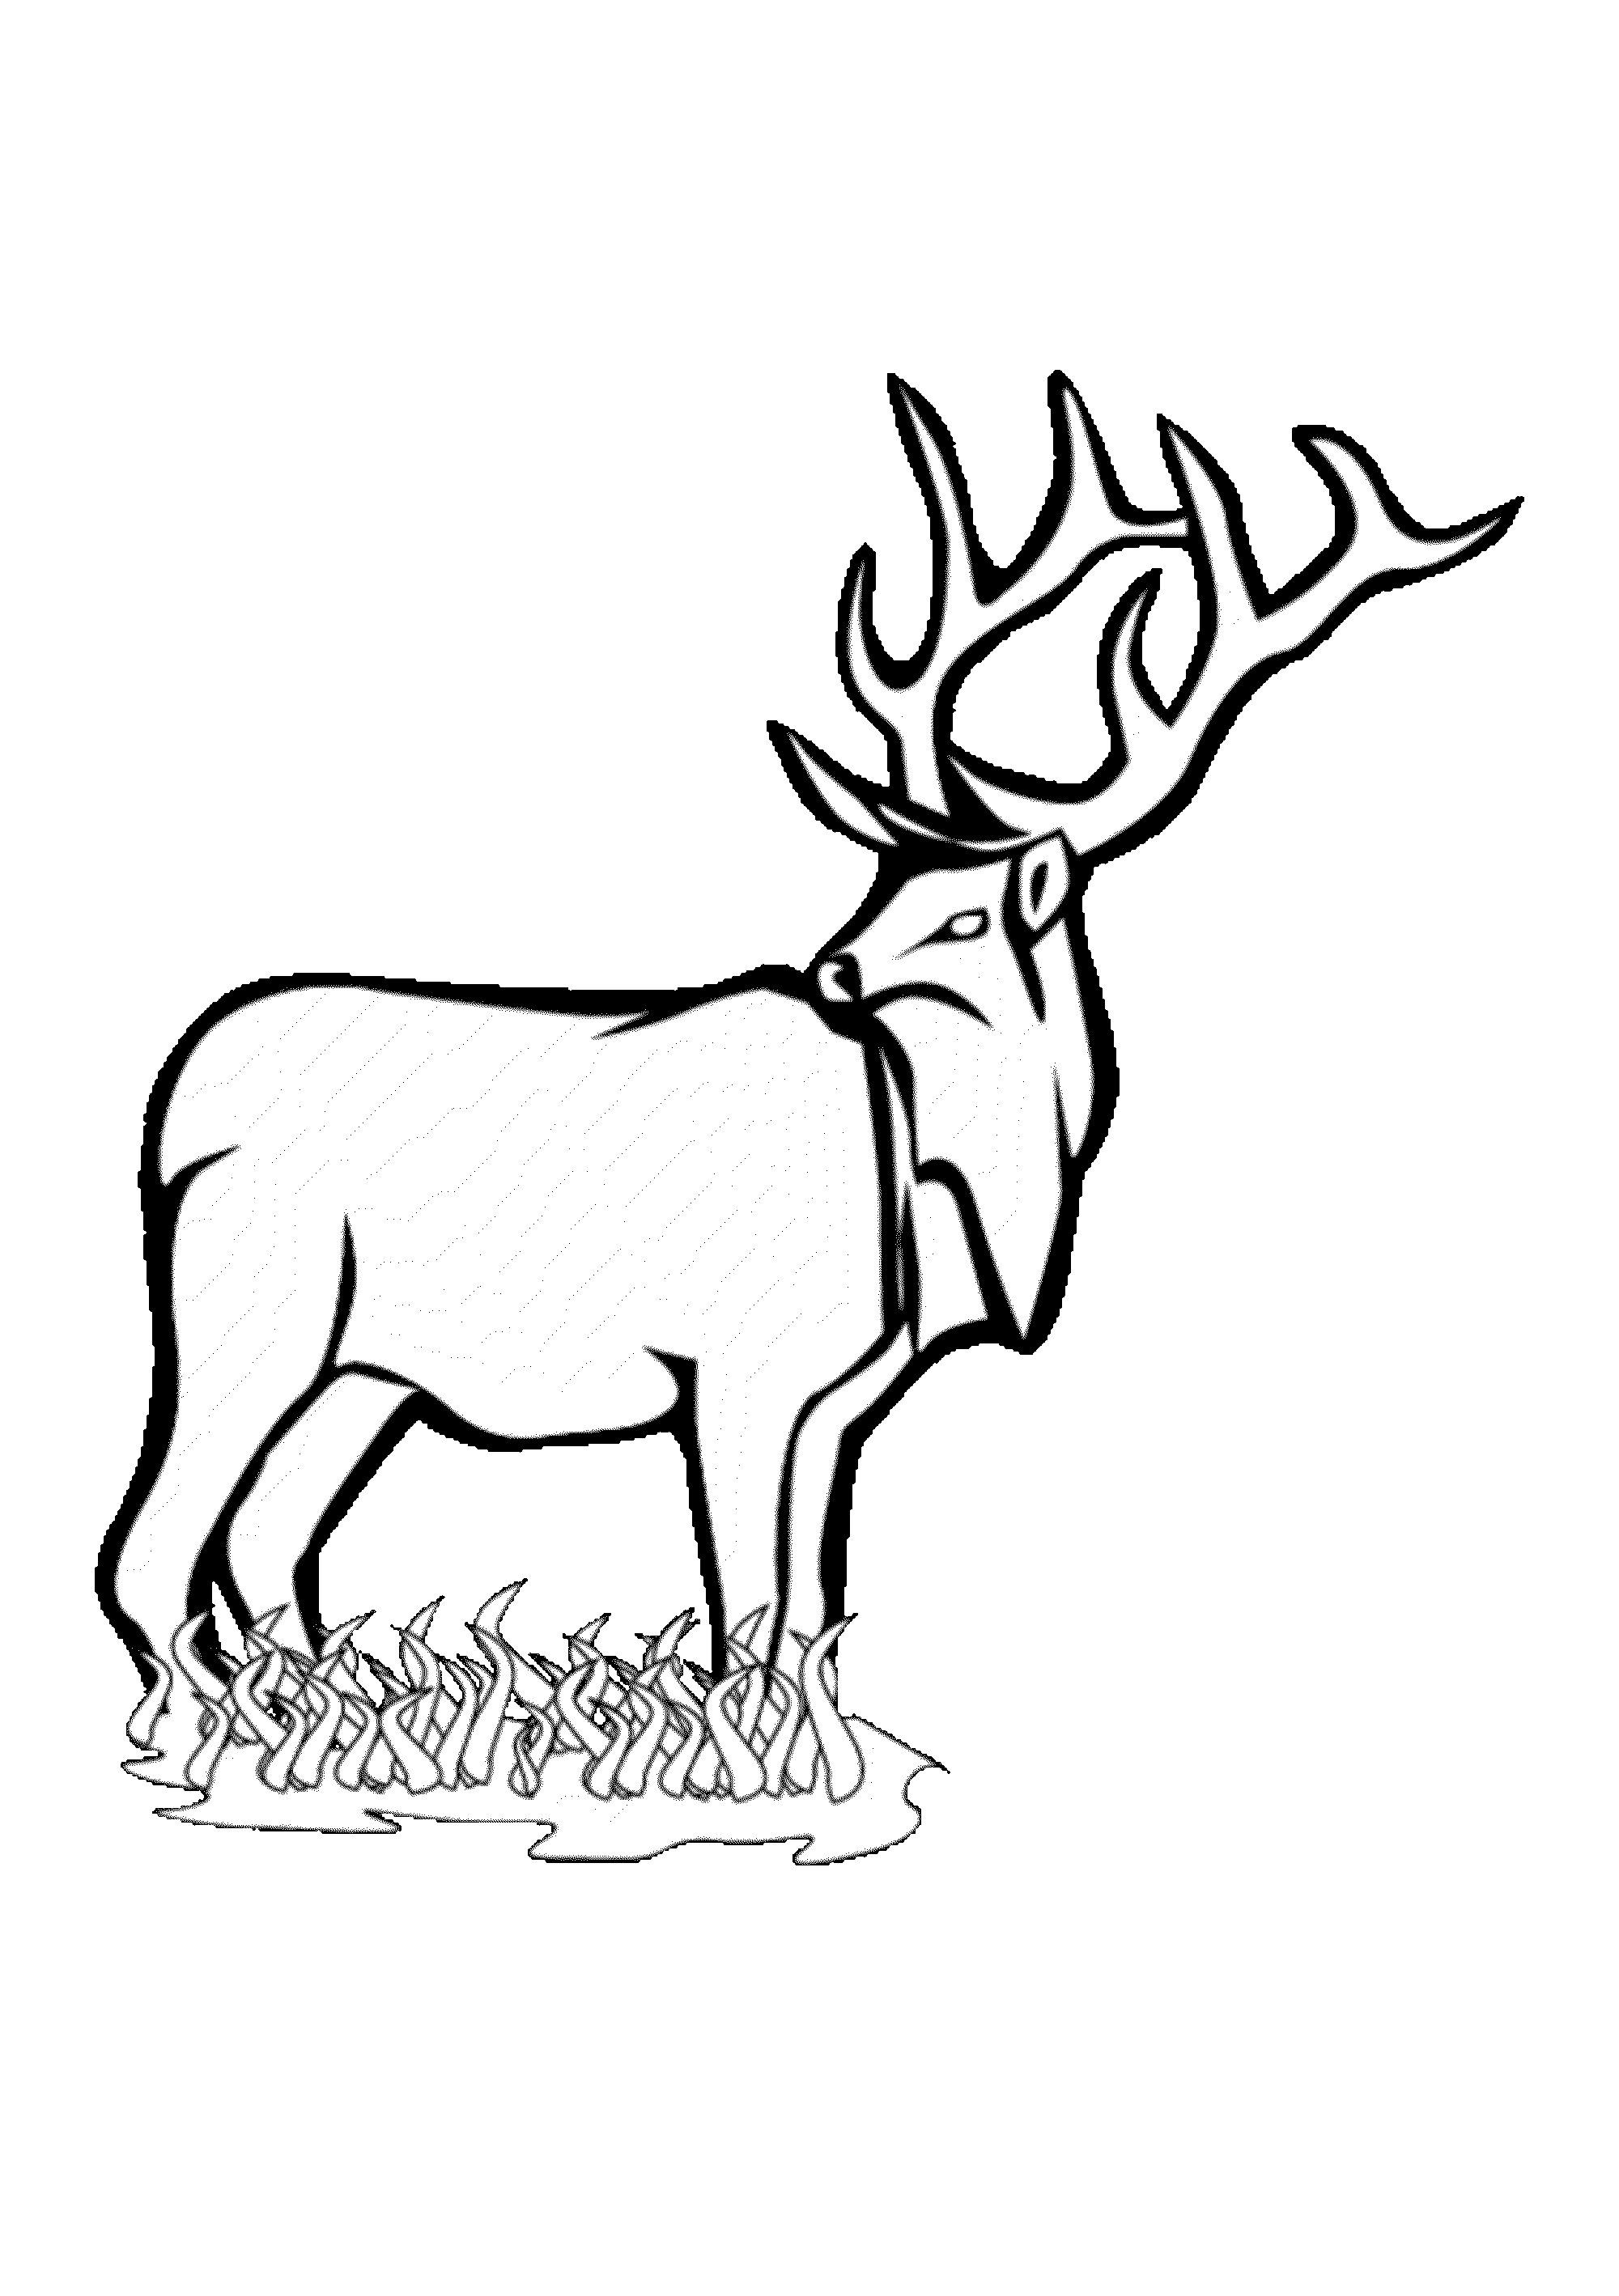 2000x2837 Deer Coloring Pages For Kids